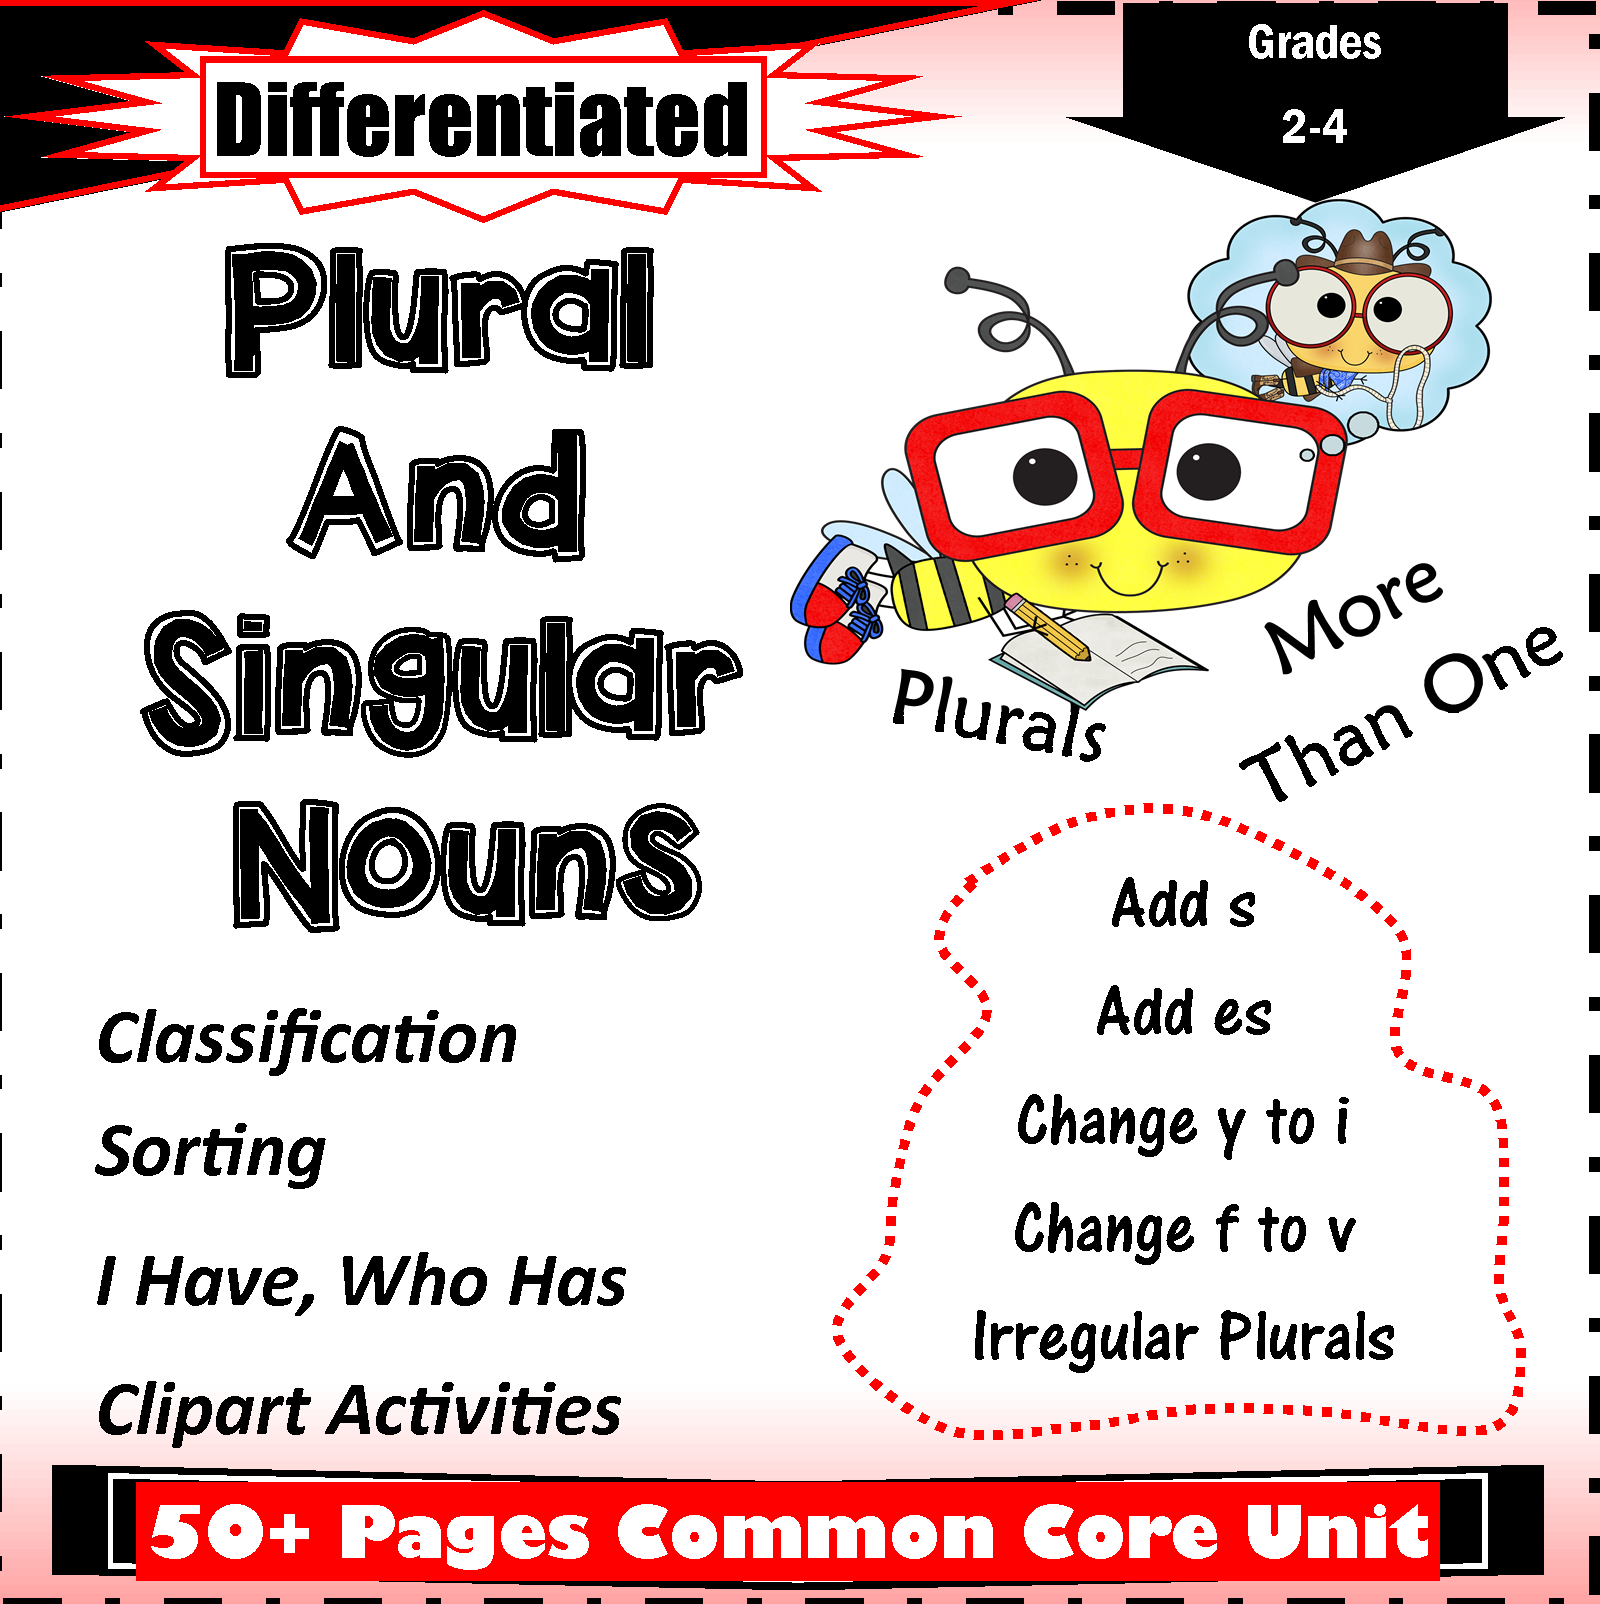 Plural And Singular Noun Worksheets For Grade 2 4 Common